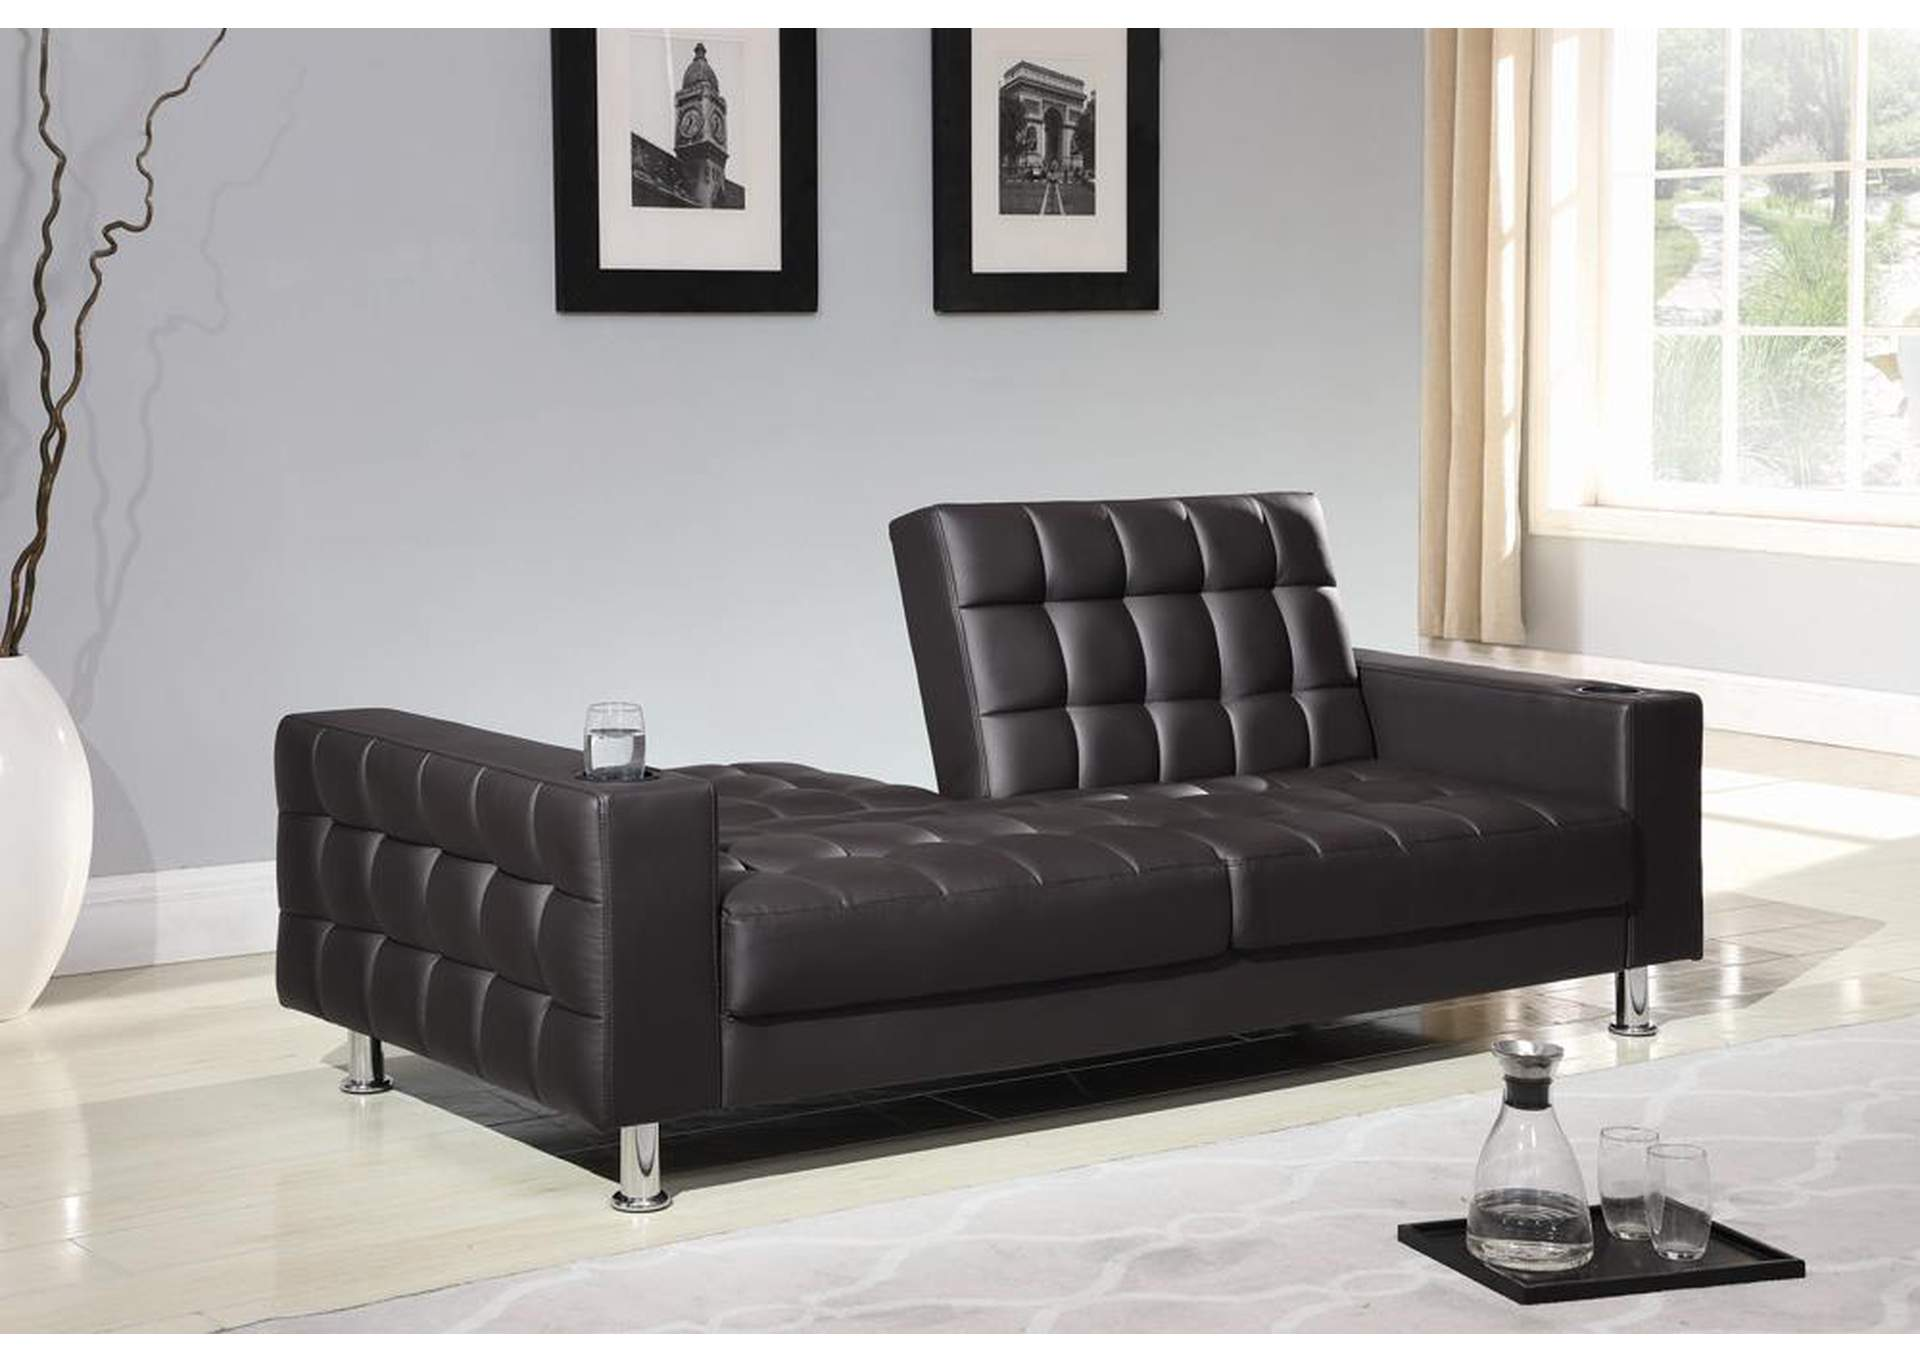 Ace Furniture and Decor Dark Brown Sofa Bed